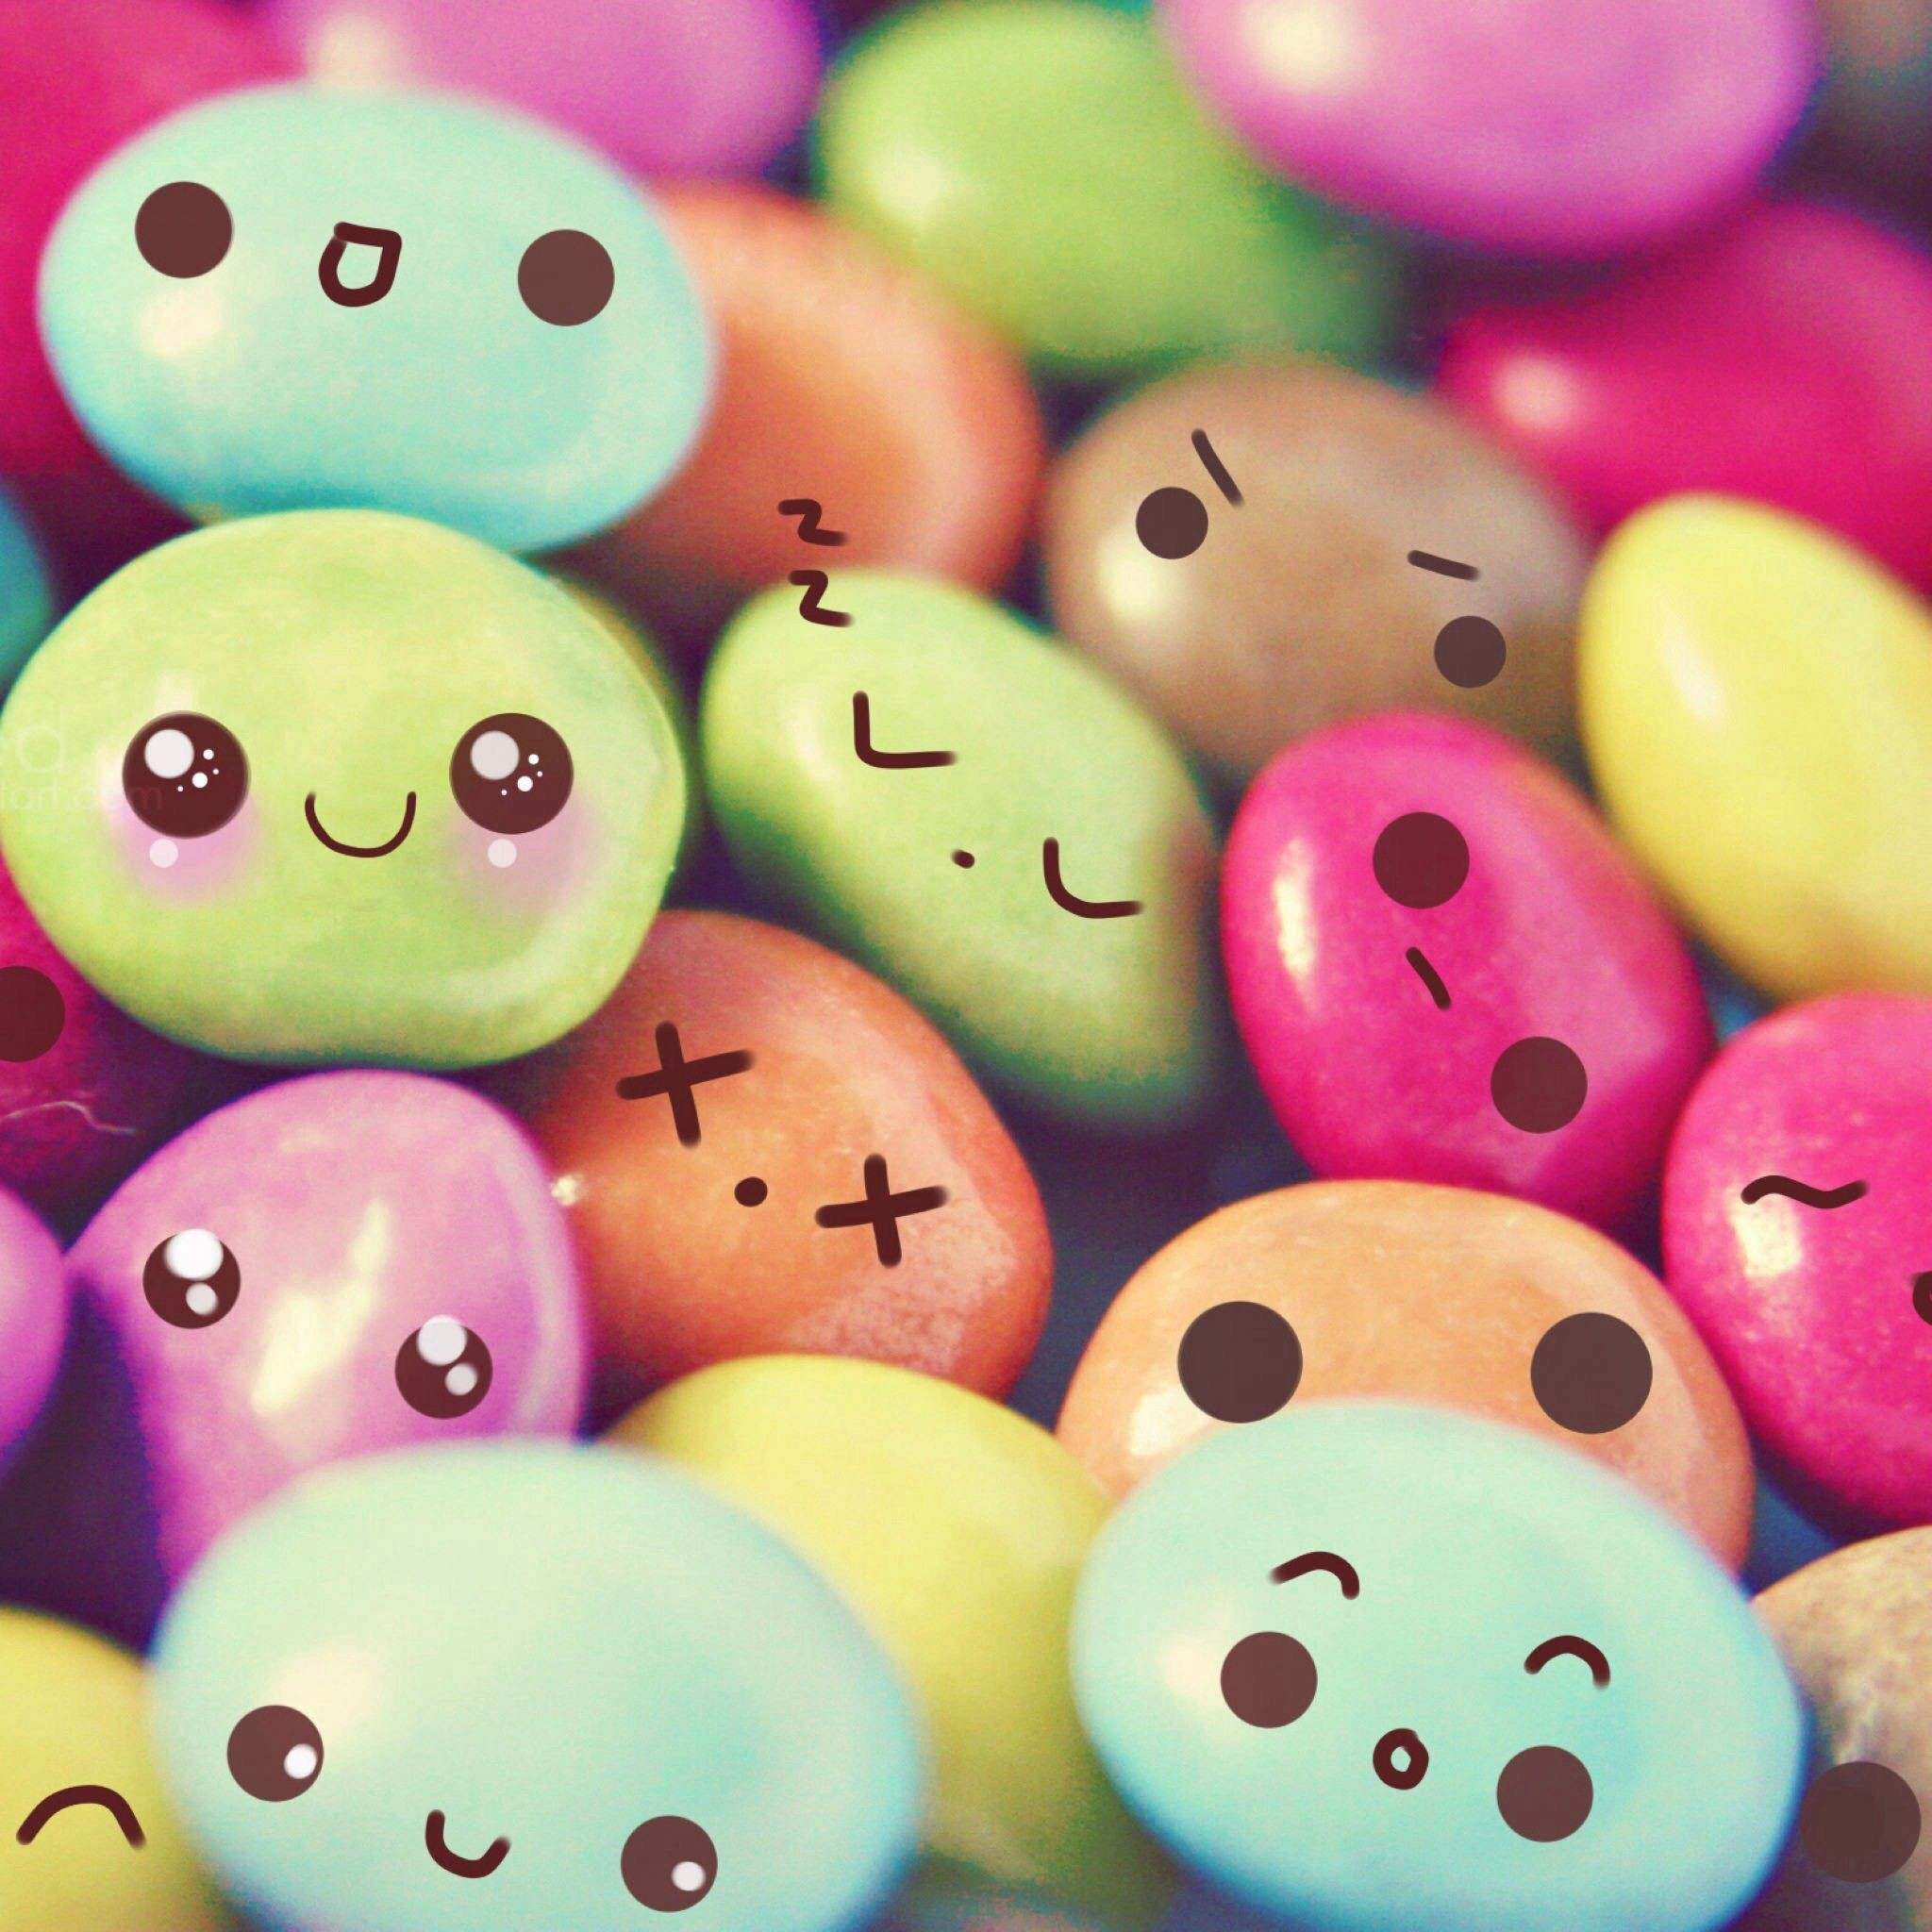 Res: 2048x2048, Smarties get it smart hehe Easter Eggs, Kawaii, Candy House, Cute Candy,